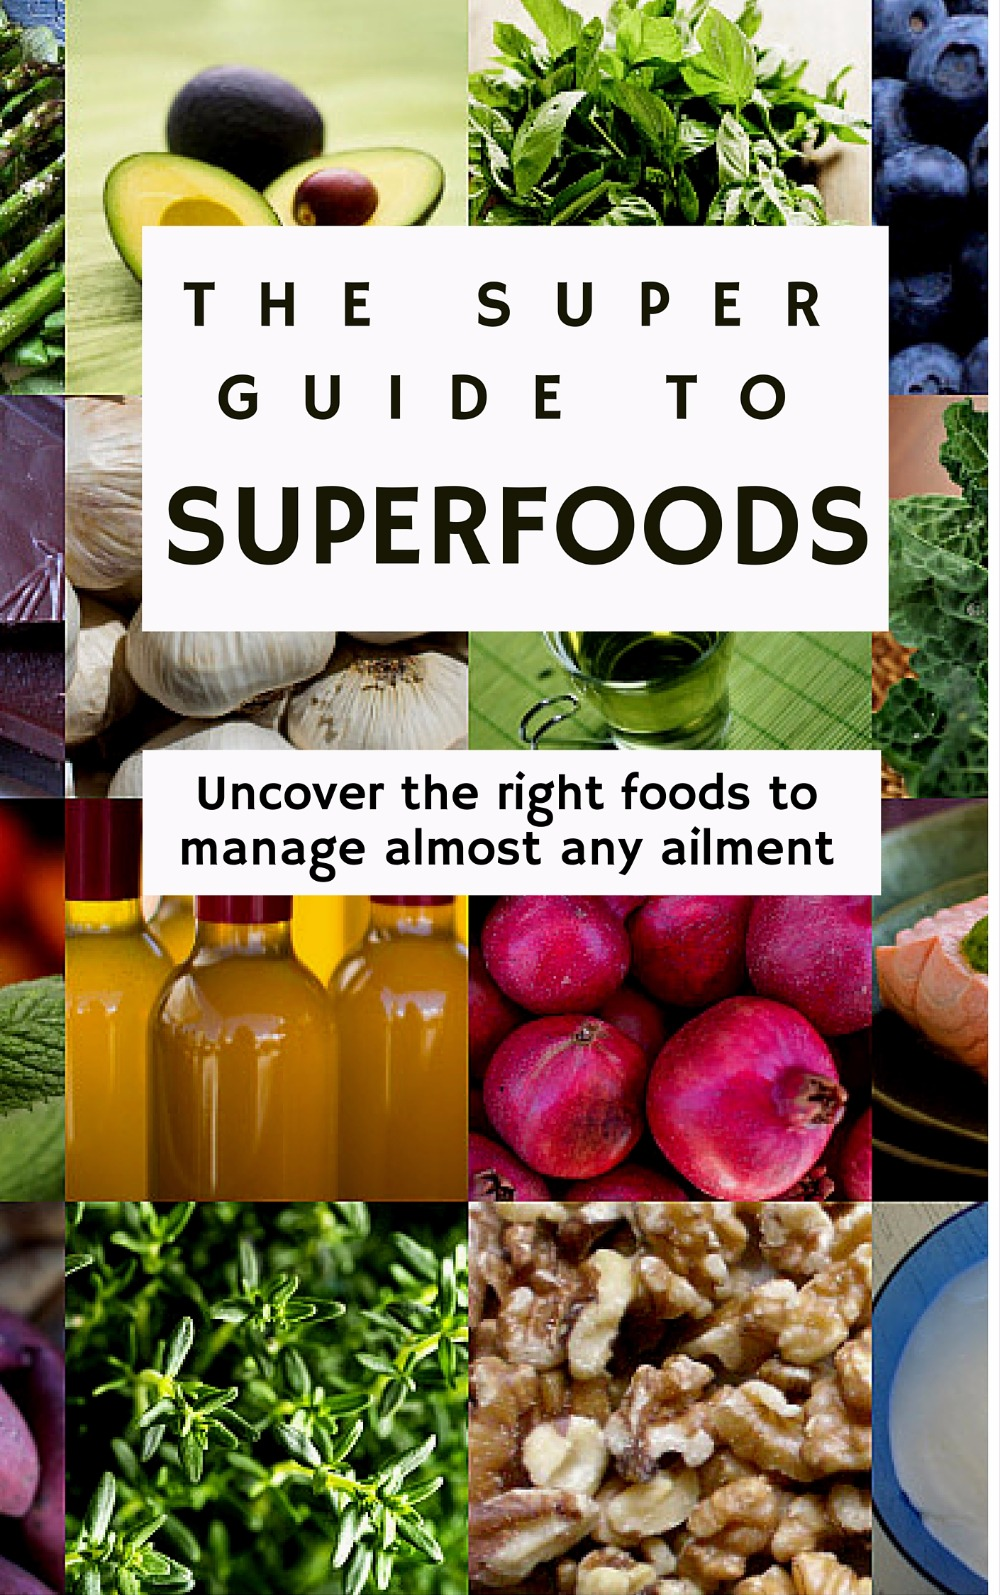 The Super Guide to SUPERFOODS